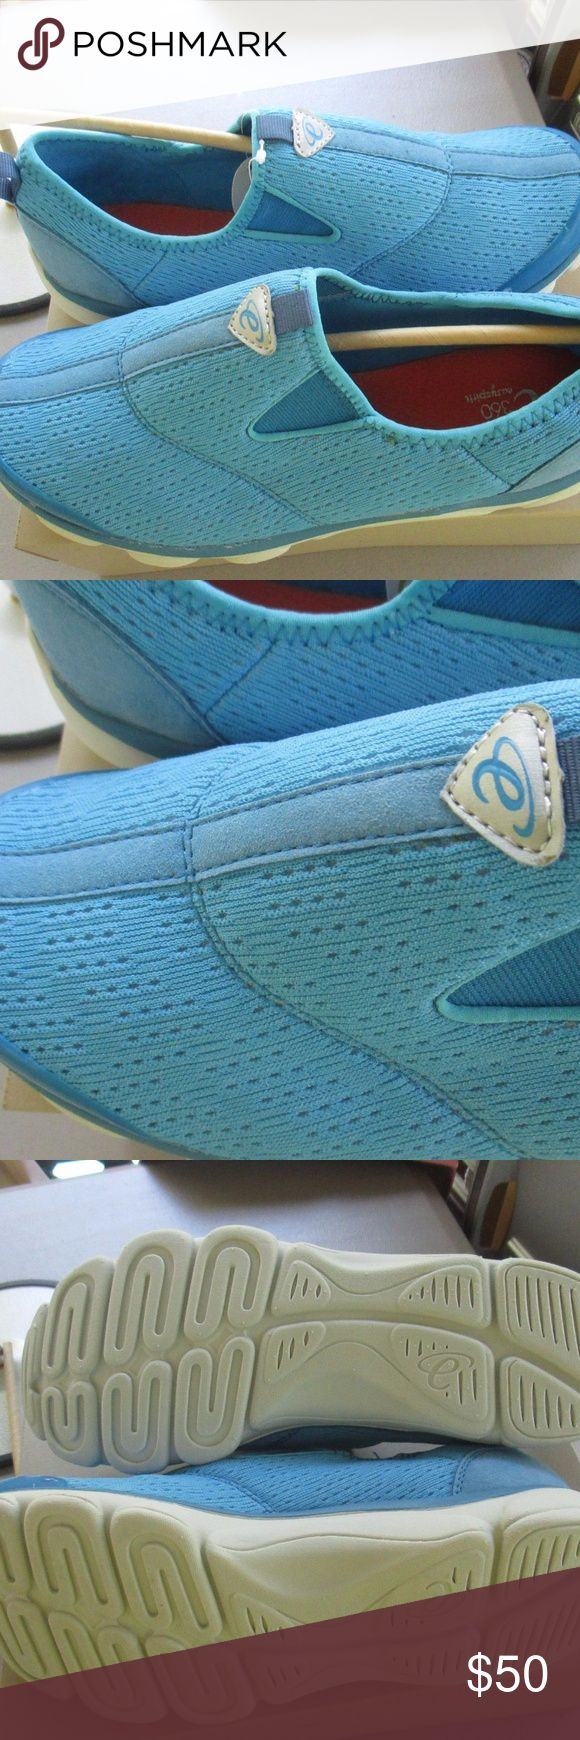 EASY SPIRIT Womans Sneakers WOMANS EASY SPIRIT 360 SIZE 8.5 WW LIGHT BLUE  MAN MADE MATERIAL STRETCH UPPER & SOCK LINING GEL CUSHION SYSTEM LIGHTWEIGHT SLIP ON MULES  NEW WITH BOX Easy Spirit Shoes Sneakers